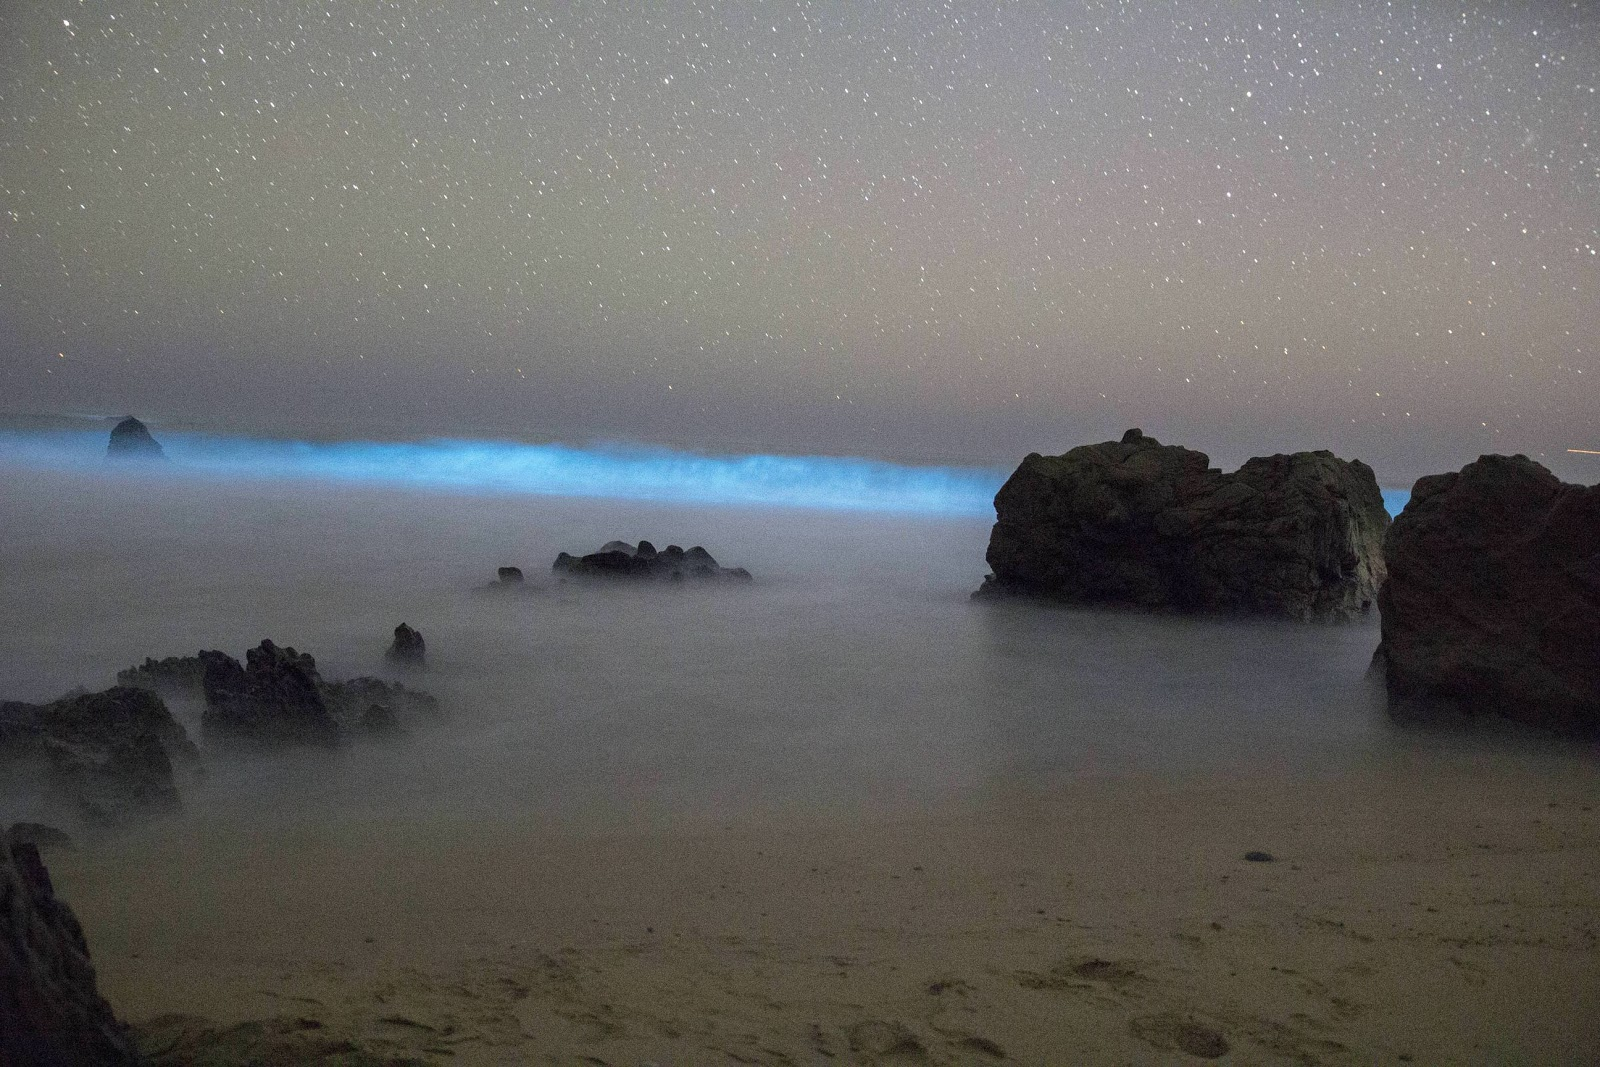 Kayaking in the bioluminescent bay is one of the fun things to do in Puerto Rico